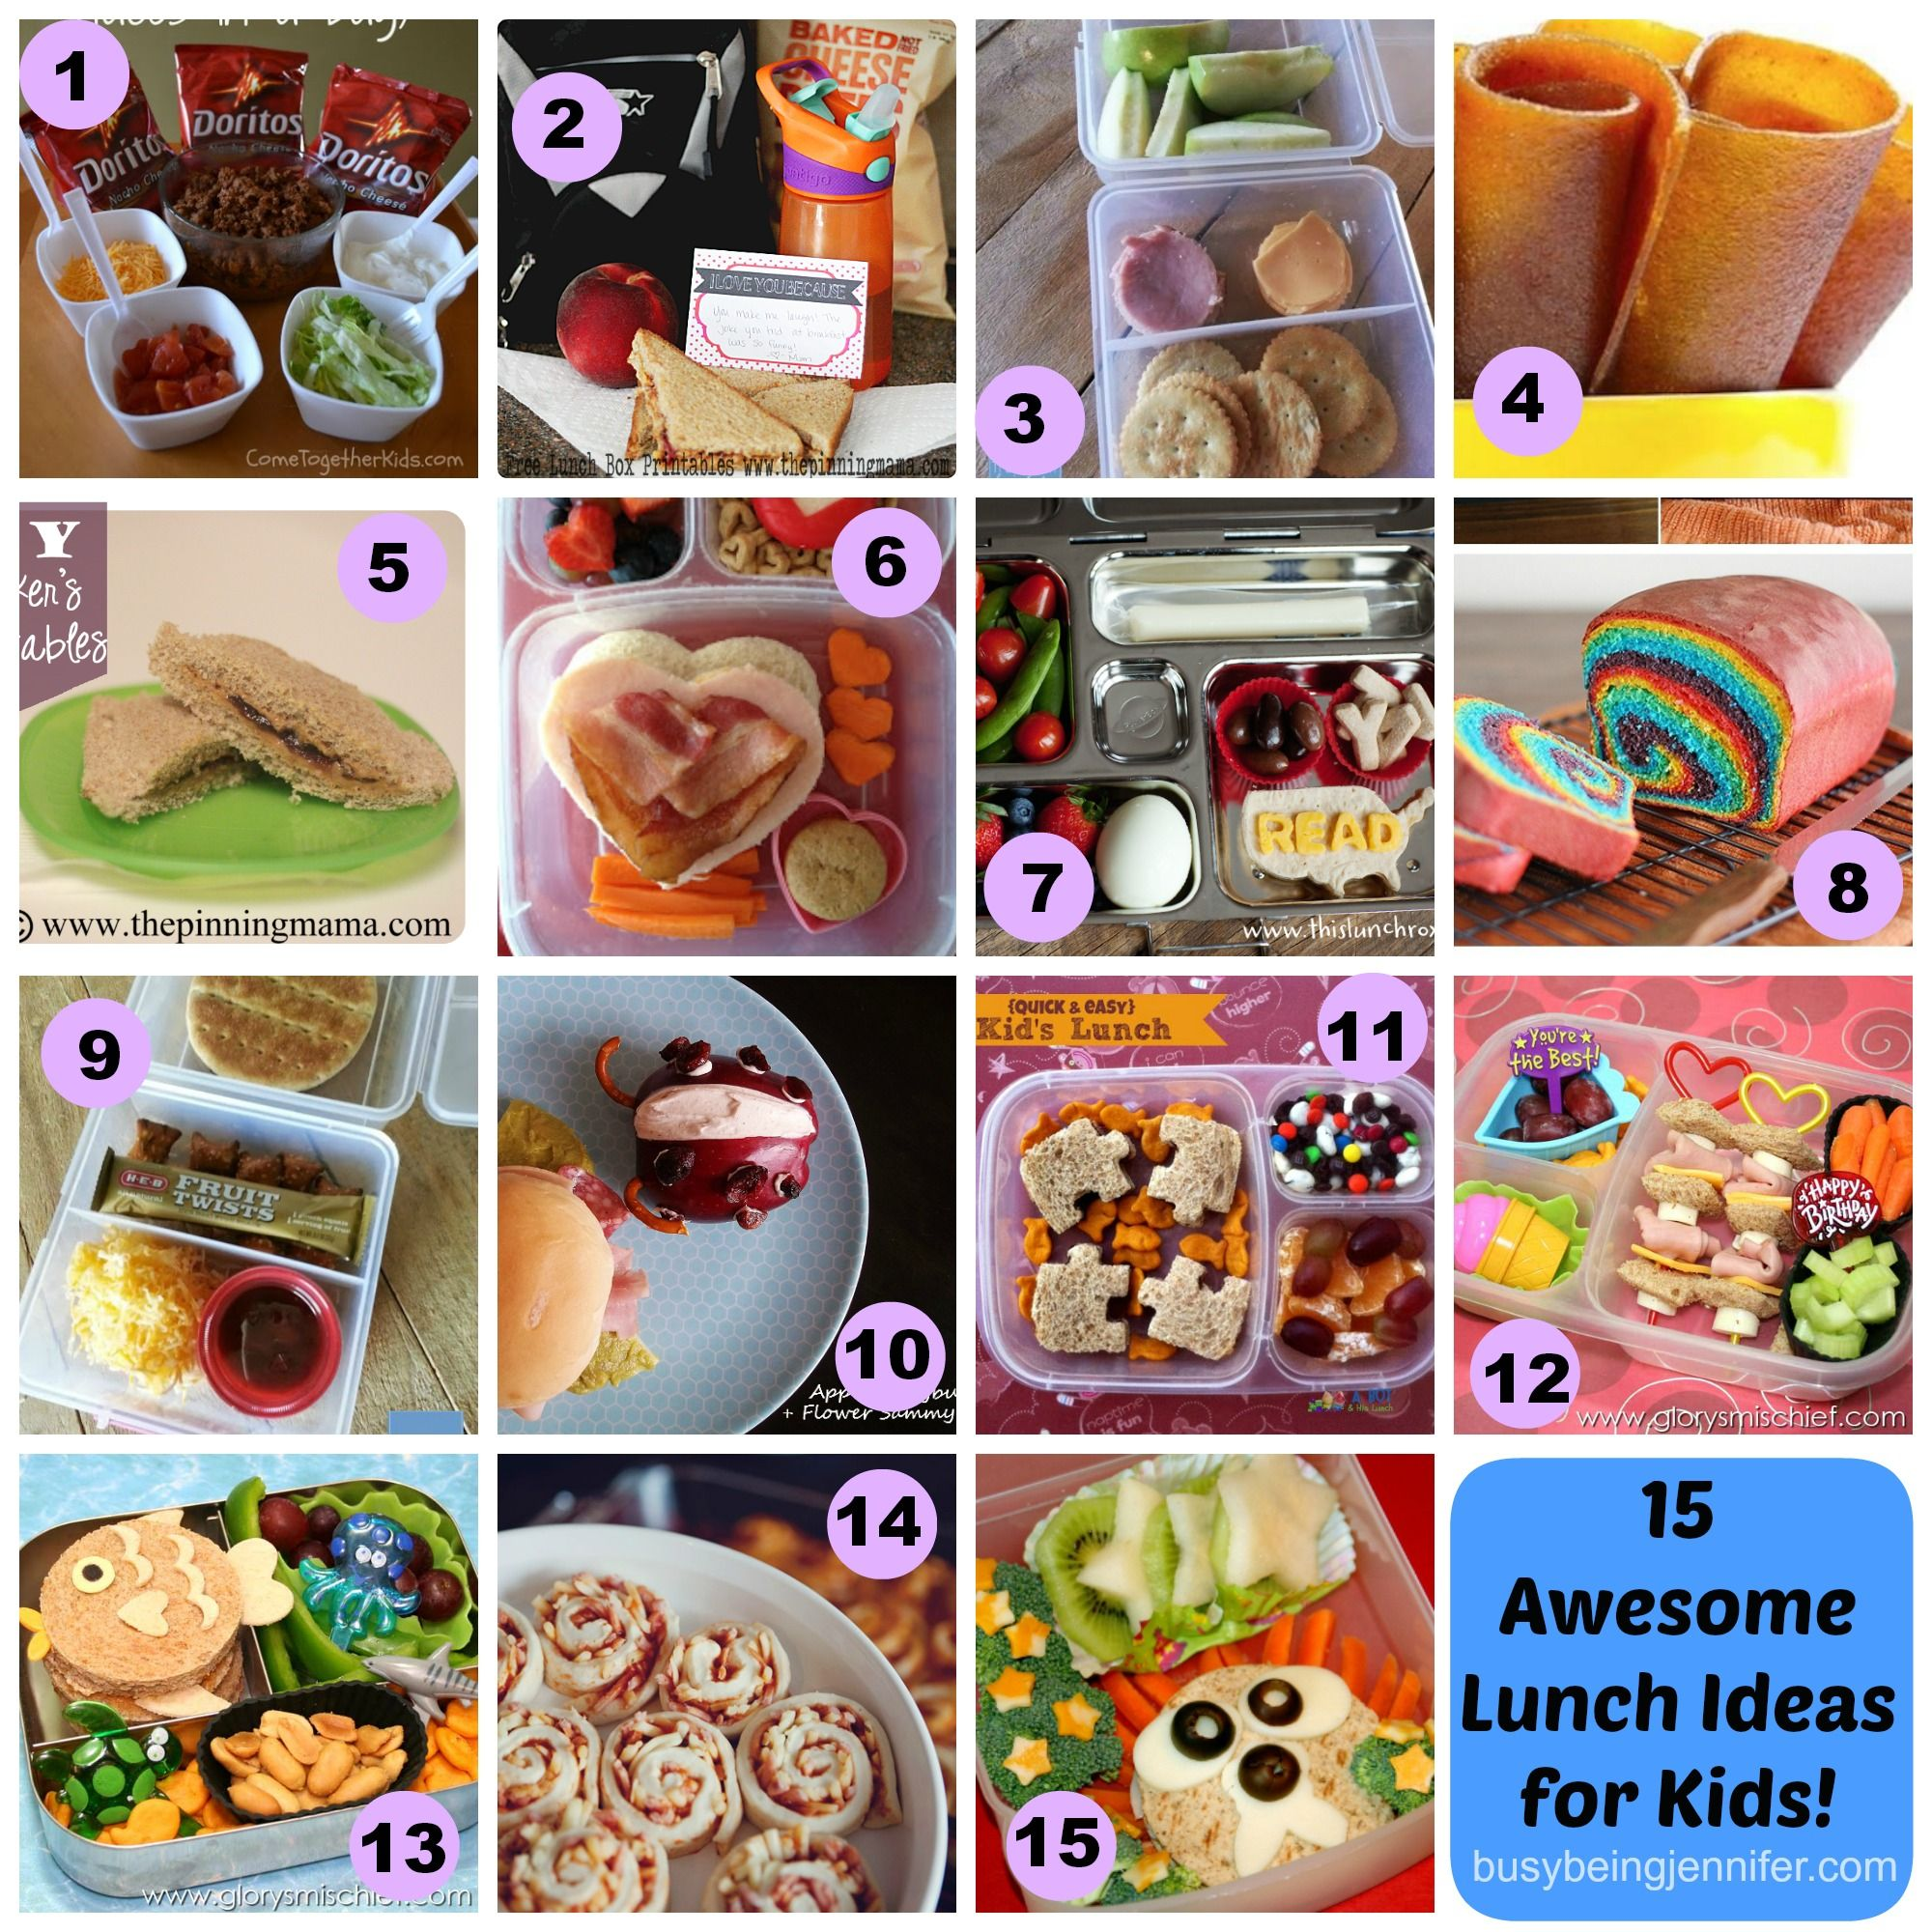 15 Awesome Lunch Ideas For Kids Busybeingjennifer